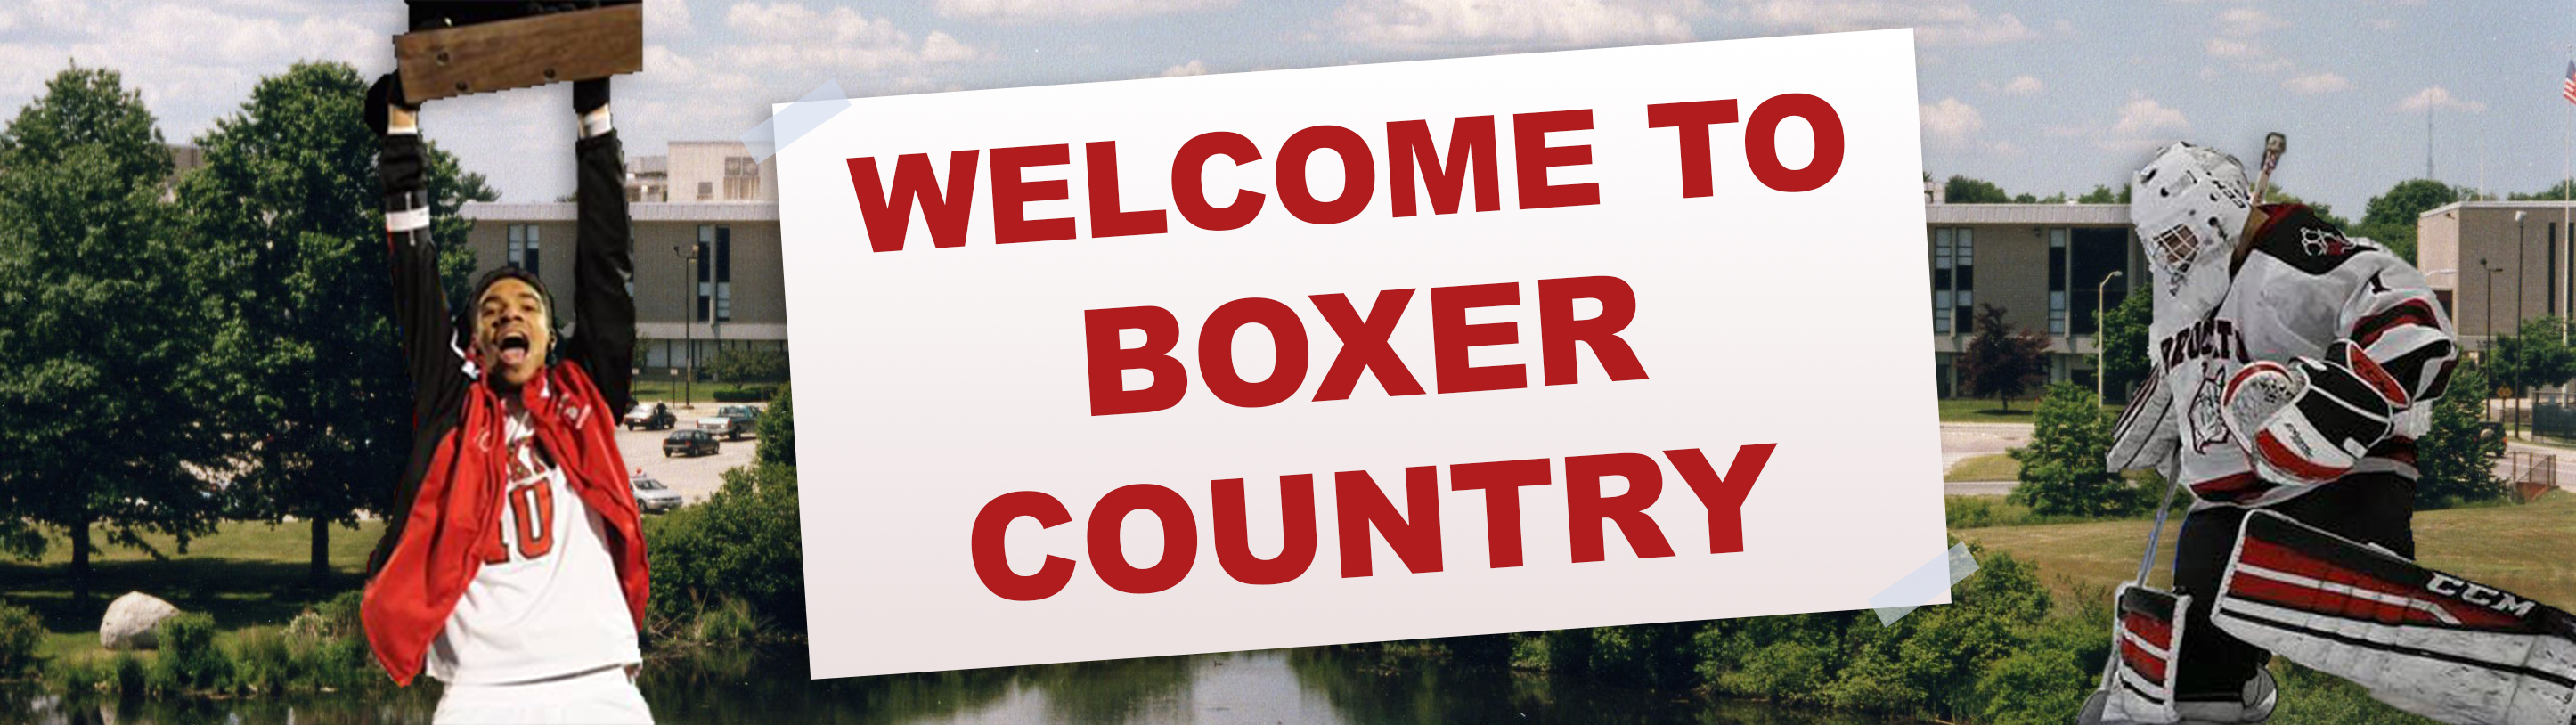 "Image: Brockton Athletics ""Welcome to Boxer Country"""